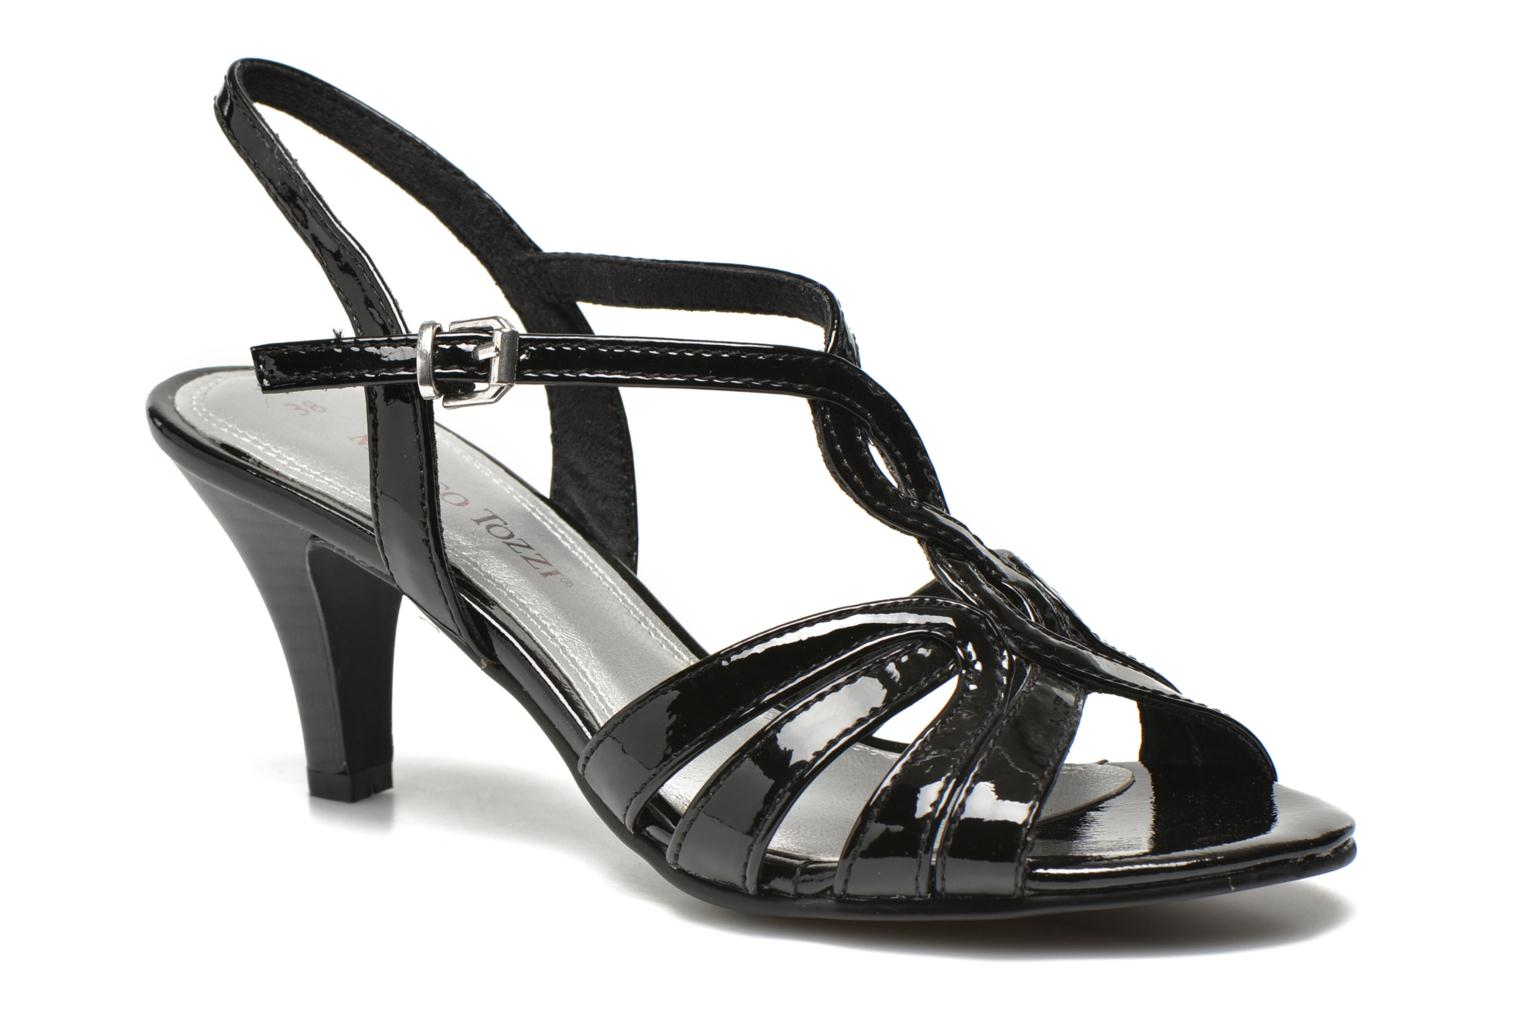 Marques Chaussure femme Marco Tozzi femme Anafi Black Patent